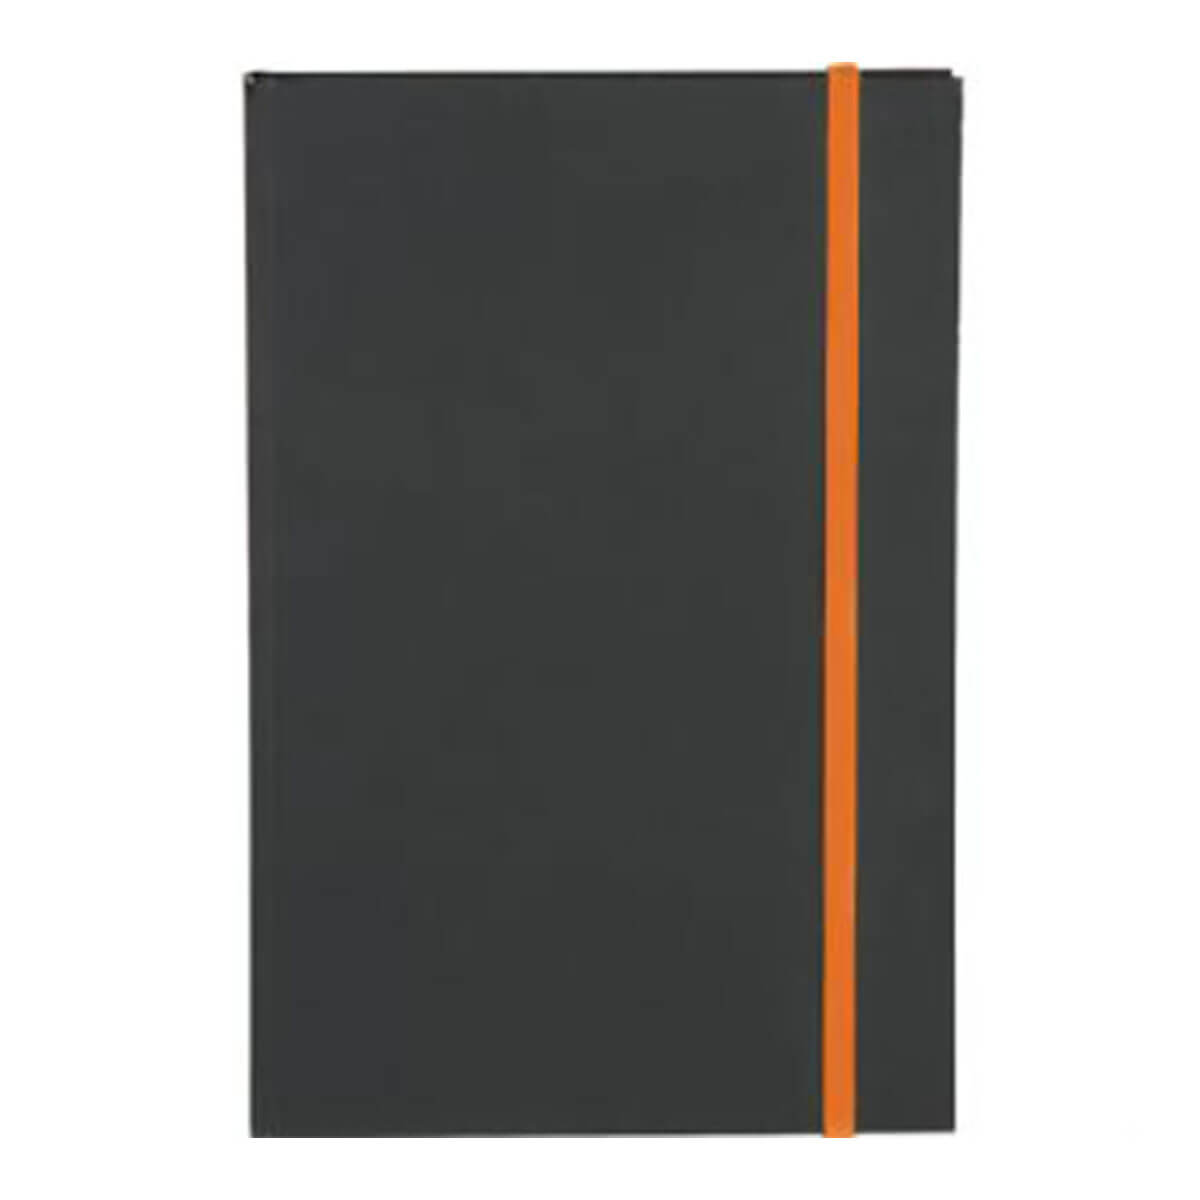 Colour Pop JournalBook-Black + Orange